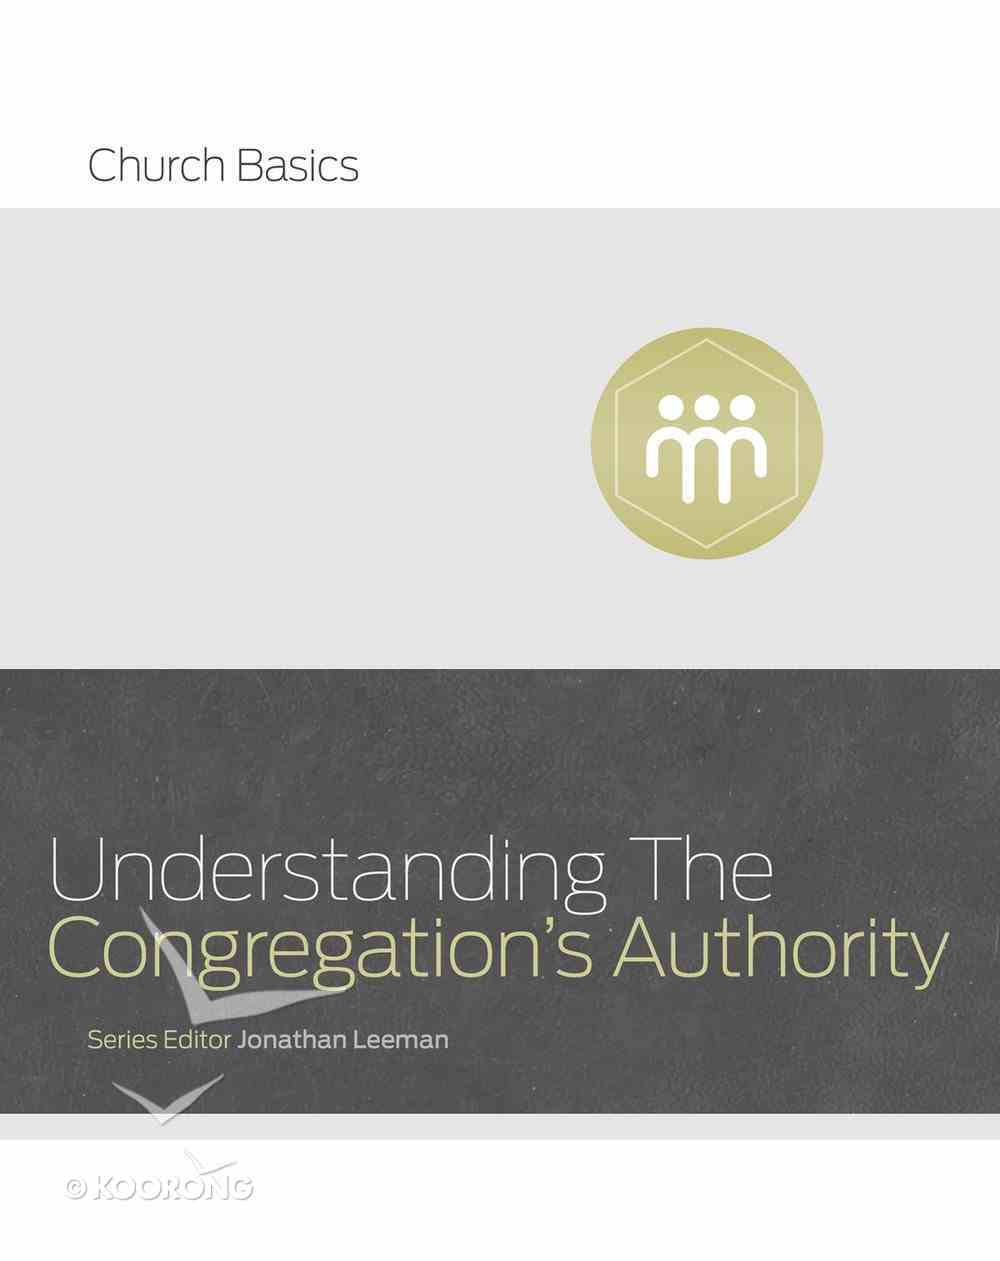 Understanding the Congregation's Authority (Church Basics Series) eBook